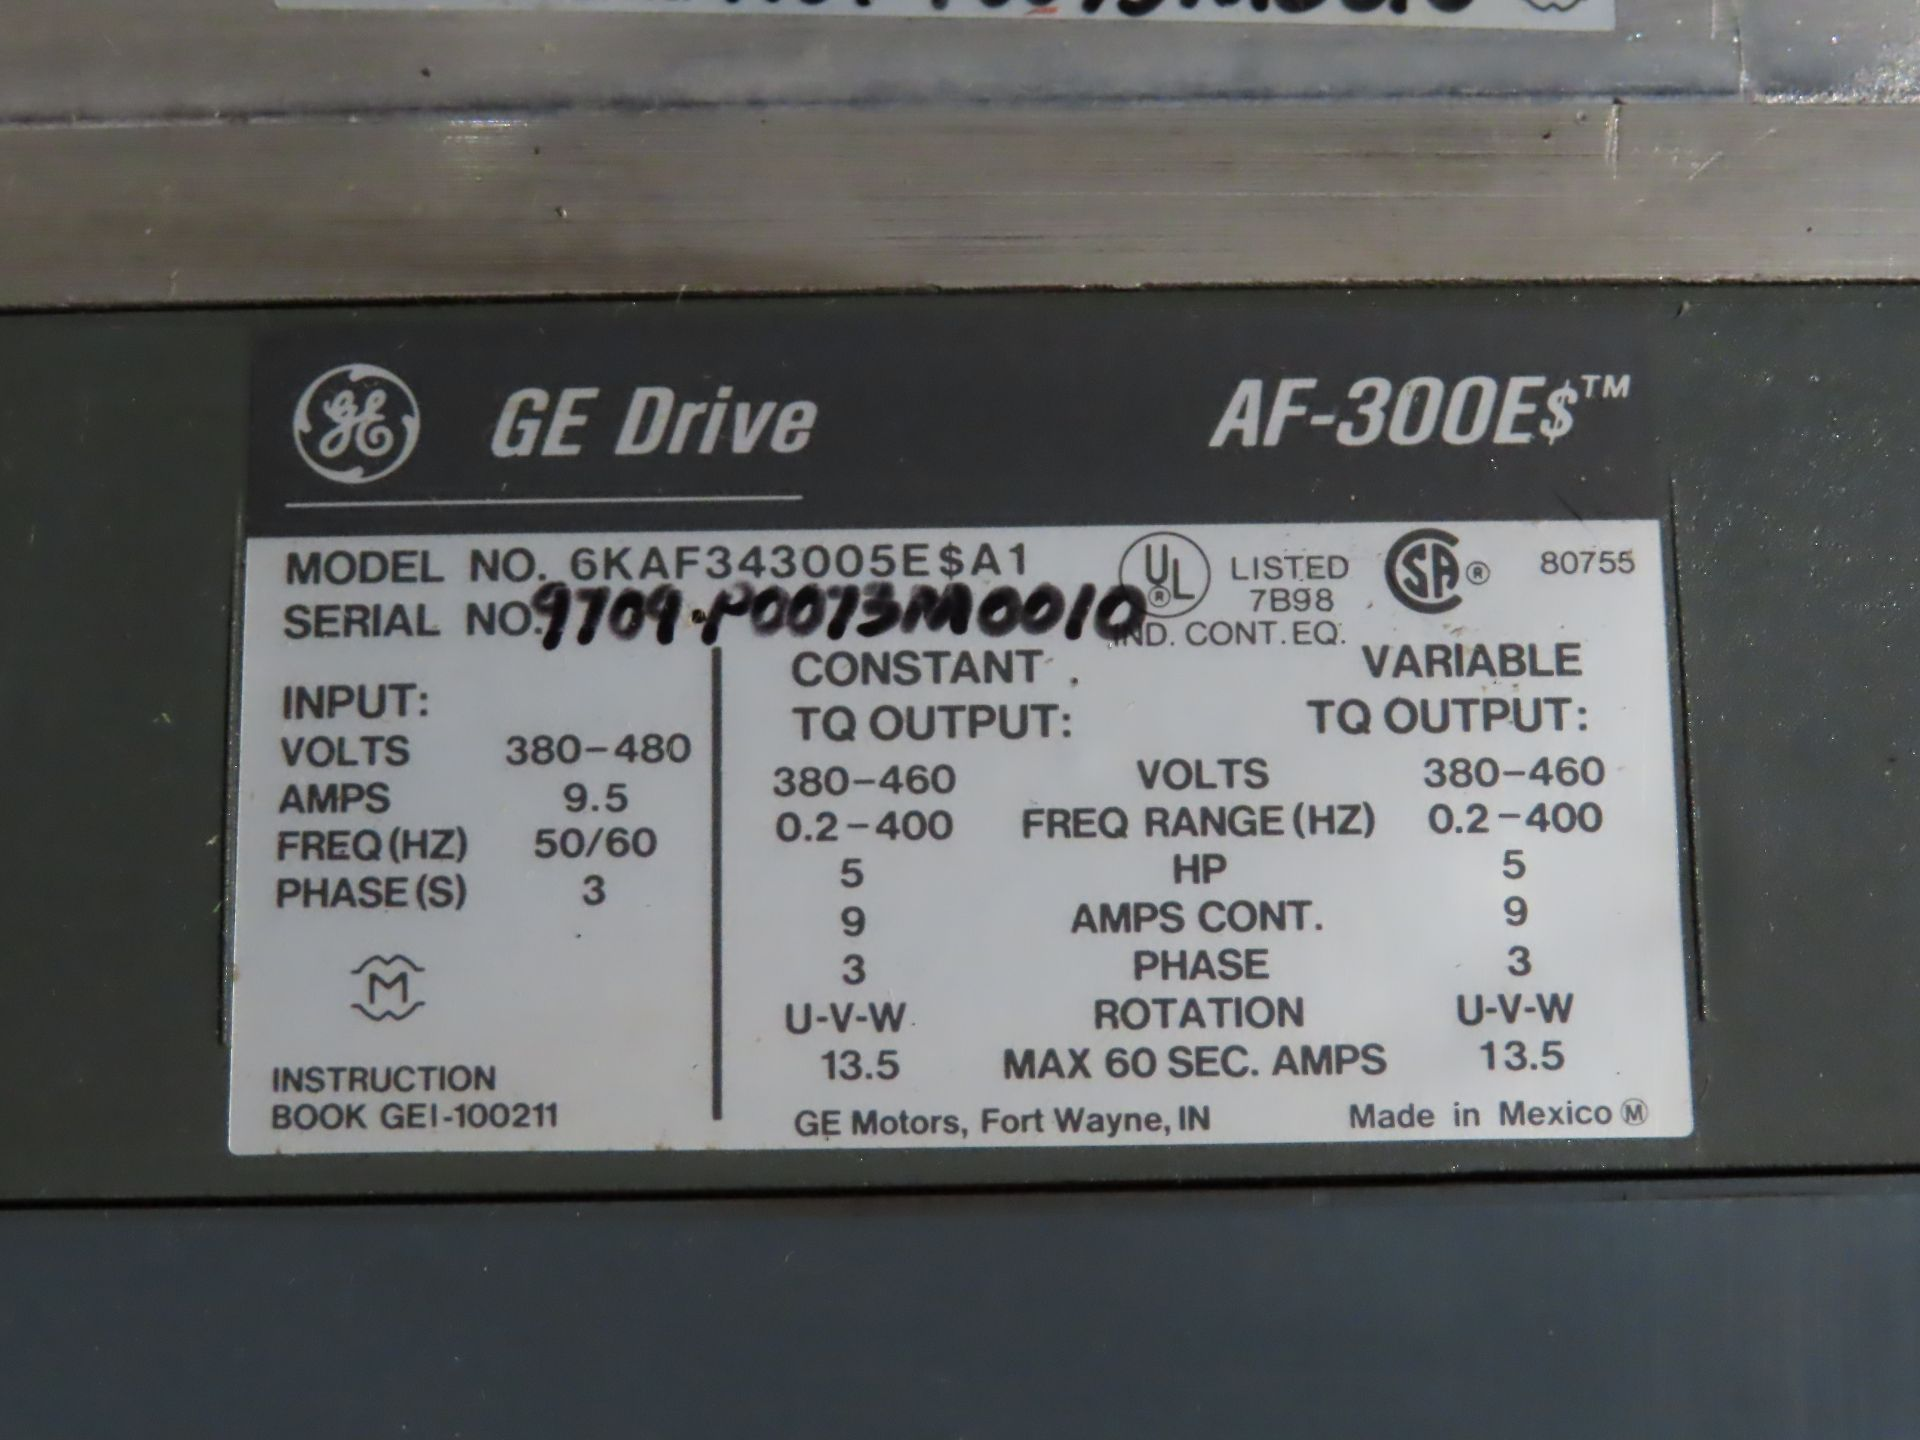 Lot 7 - GE drive model 6KAF343005E$A1, used, as always, with Brolyn LLC auctions, all lots can be picked